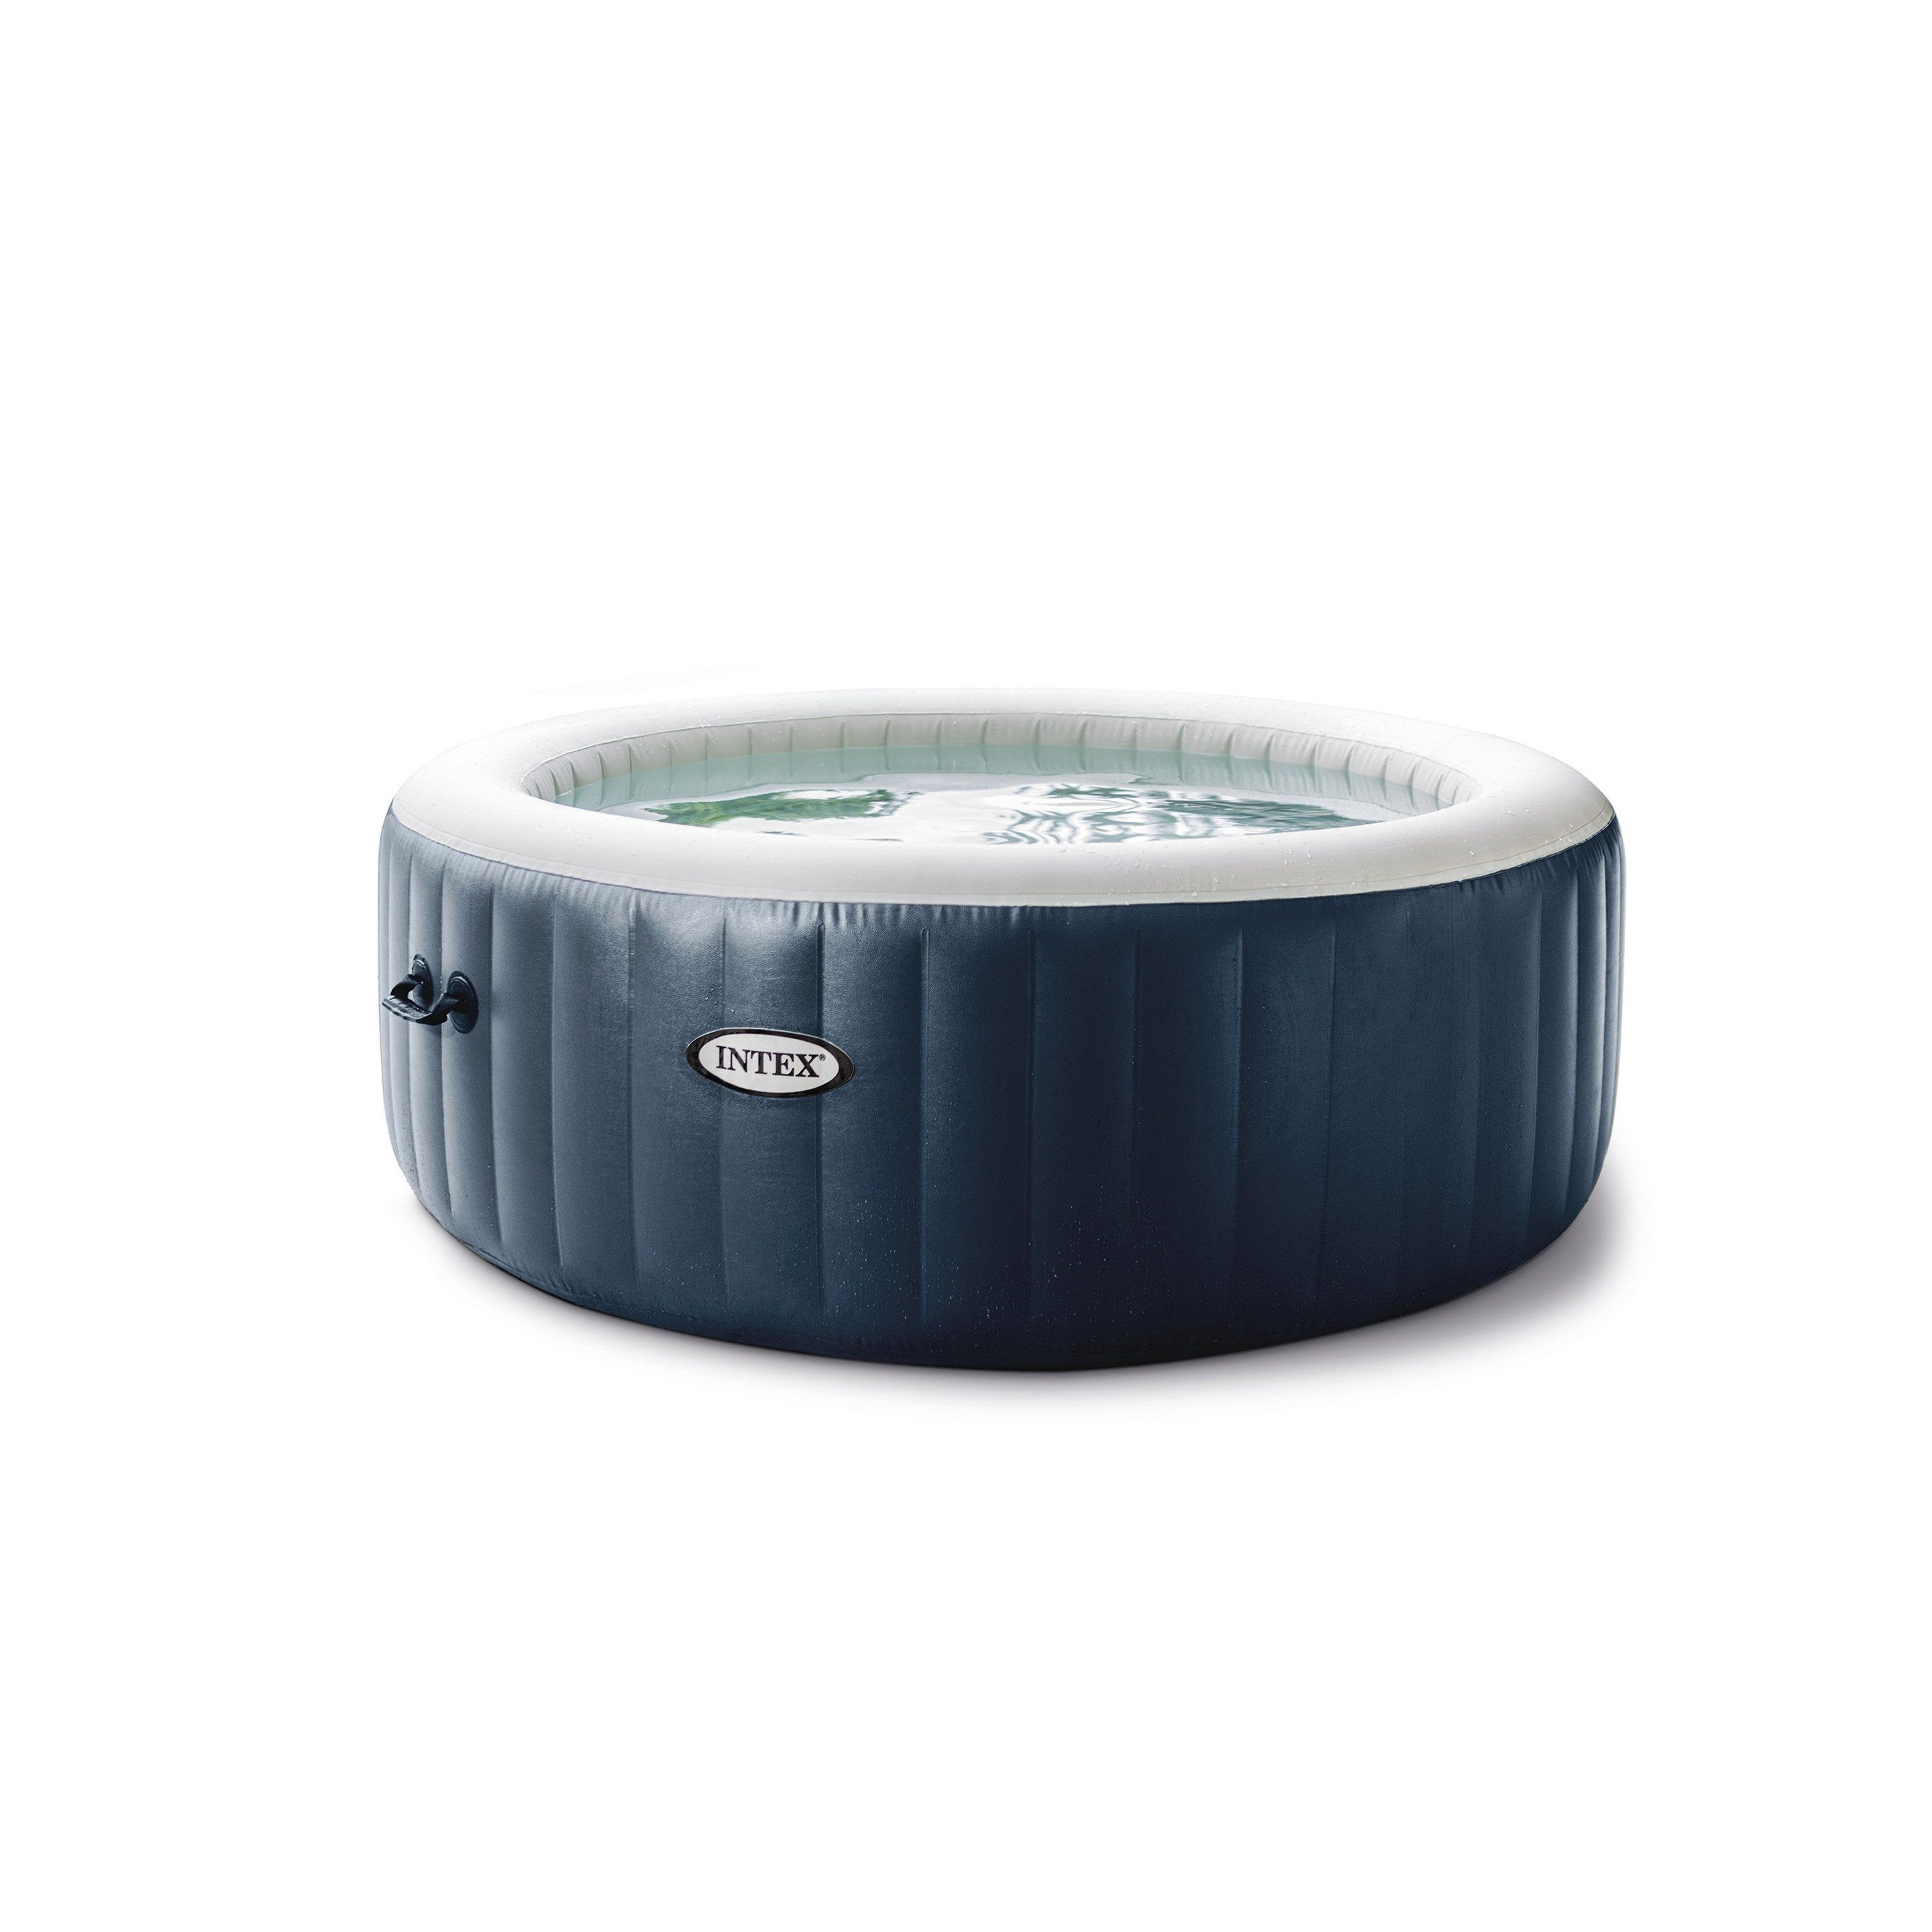 Spa Leroy Merlin Intex 6 Places spa gonflable intex blue navy rond, 6 places assises